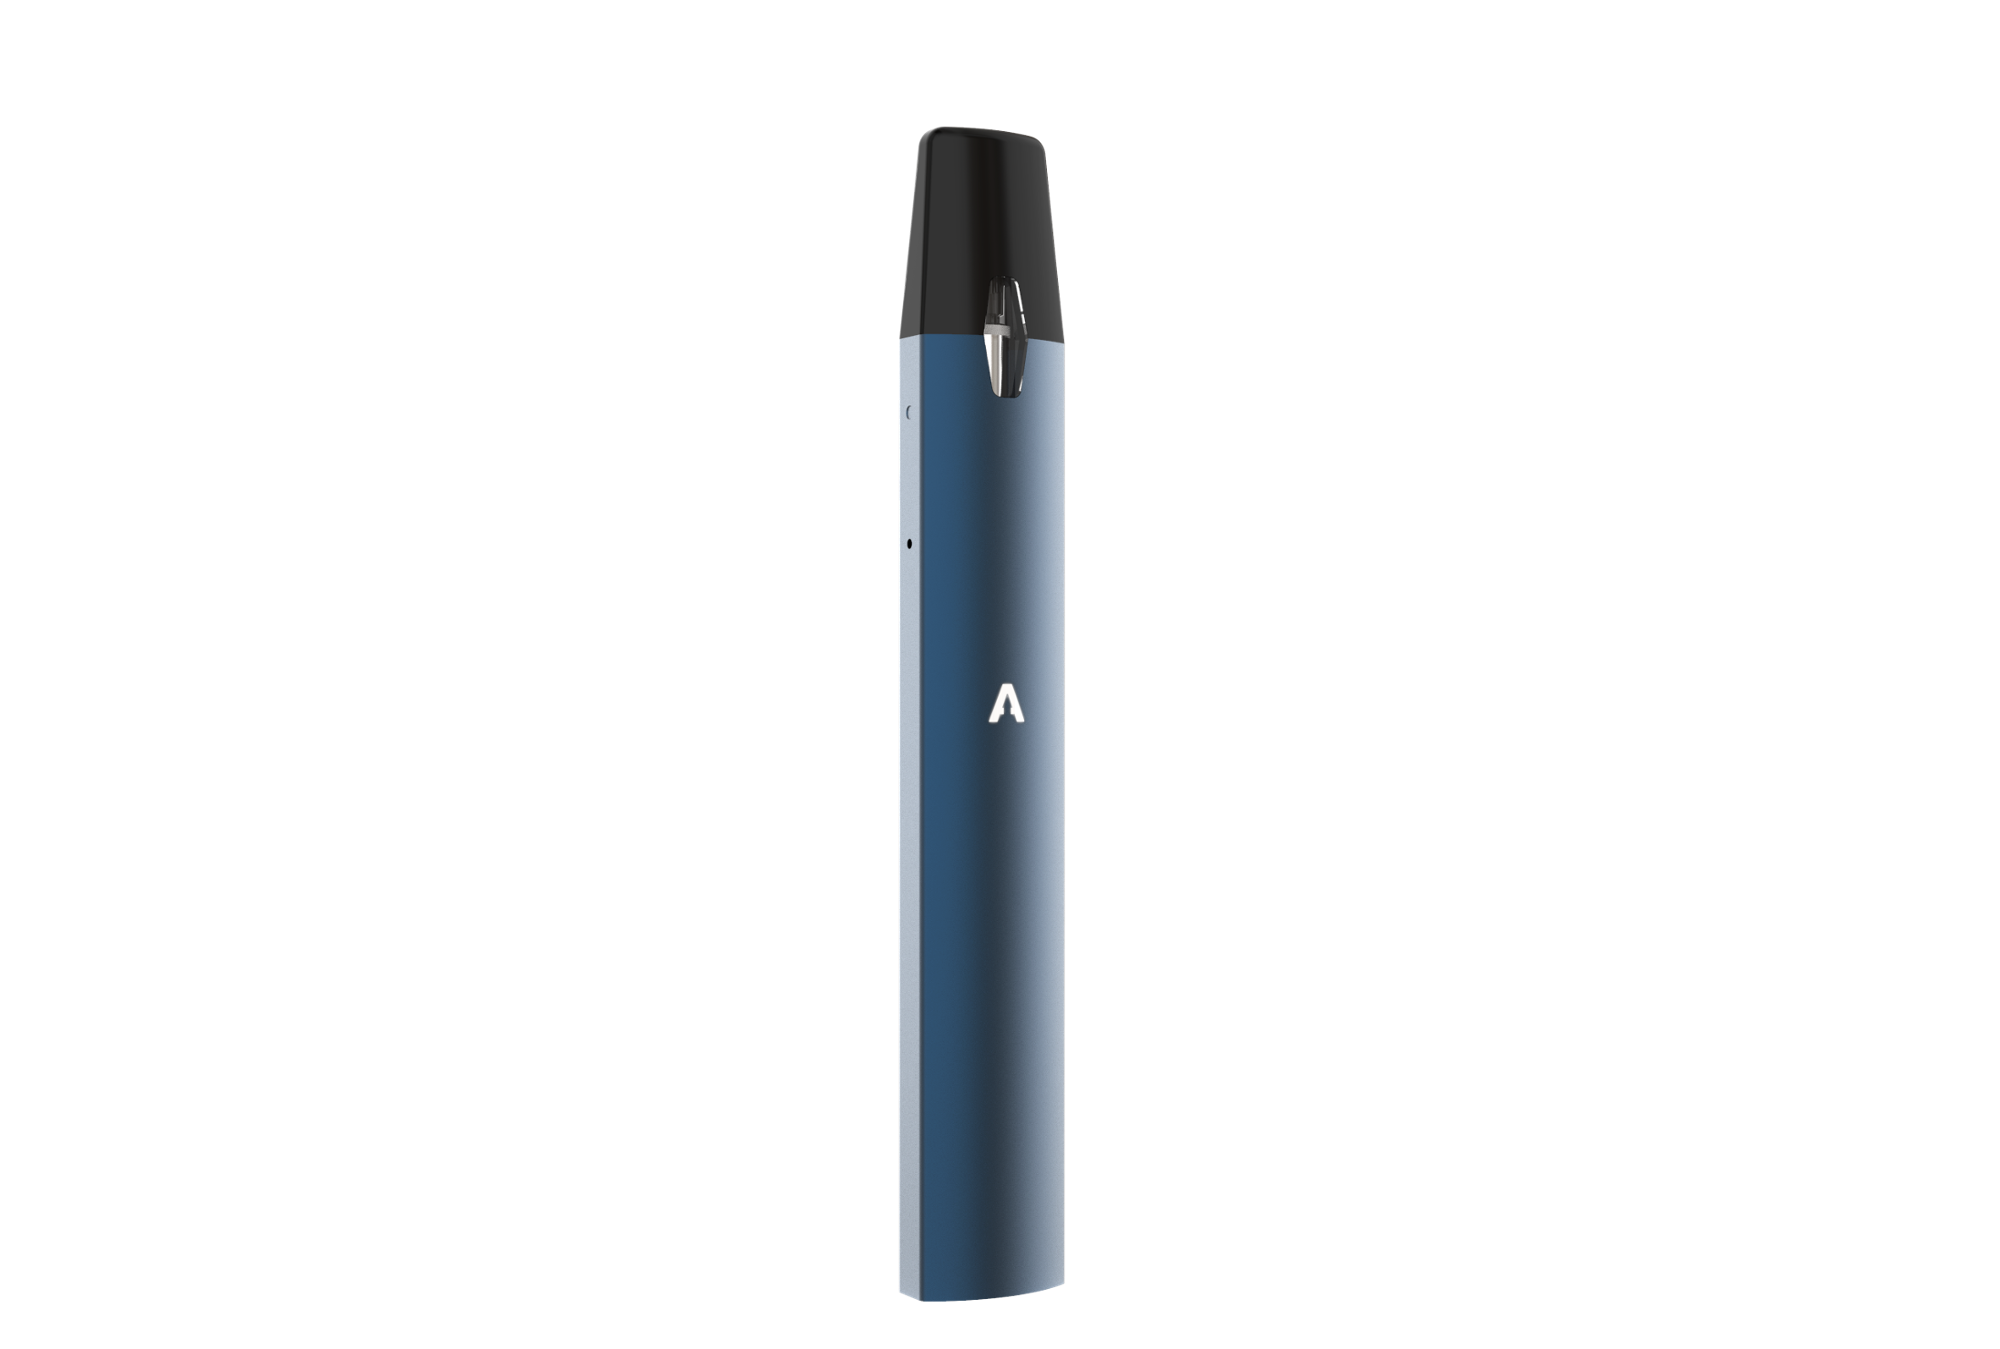 Online shopping usa 510 buttonless cbd vape pen adjustable voltage vape health vape stick electronic cigarette rechargeable pen